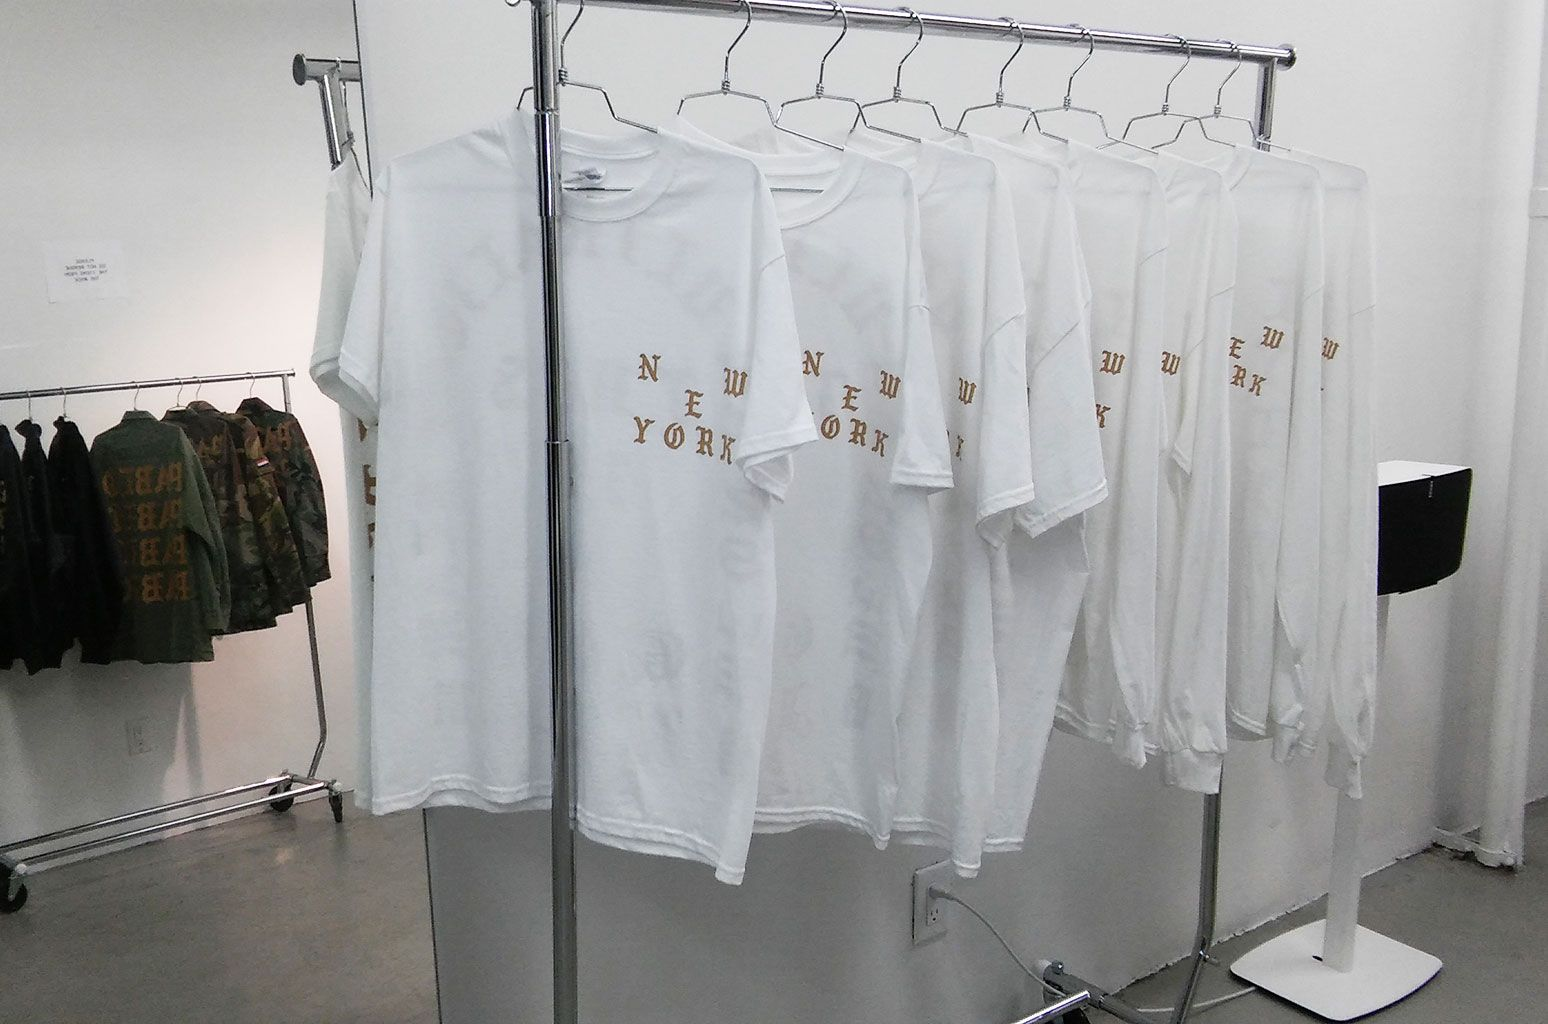 Pin By Jay Luxenaire On All Things Yeezy Pop Up Shop Pablo Merch Kanye West